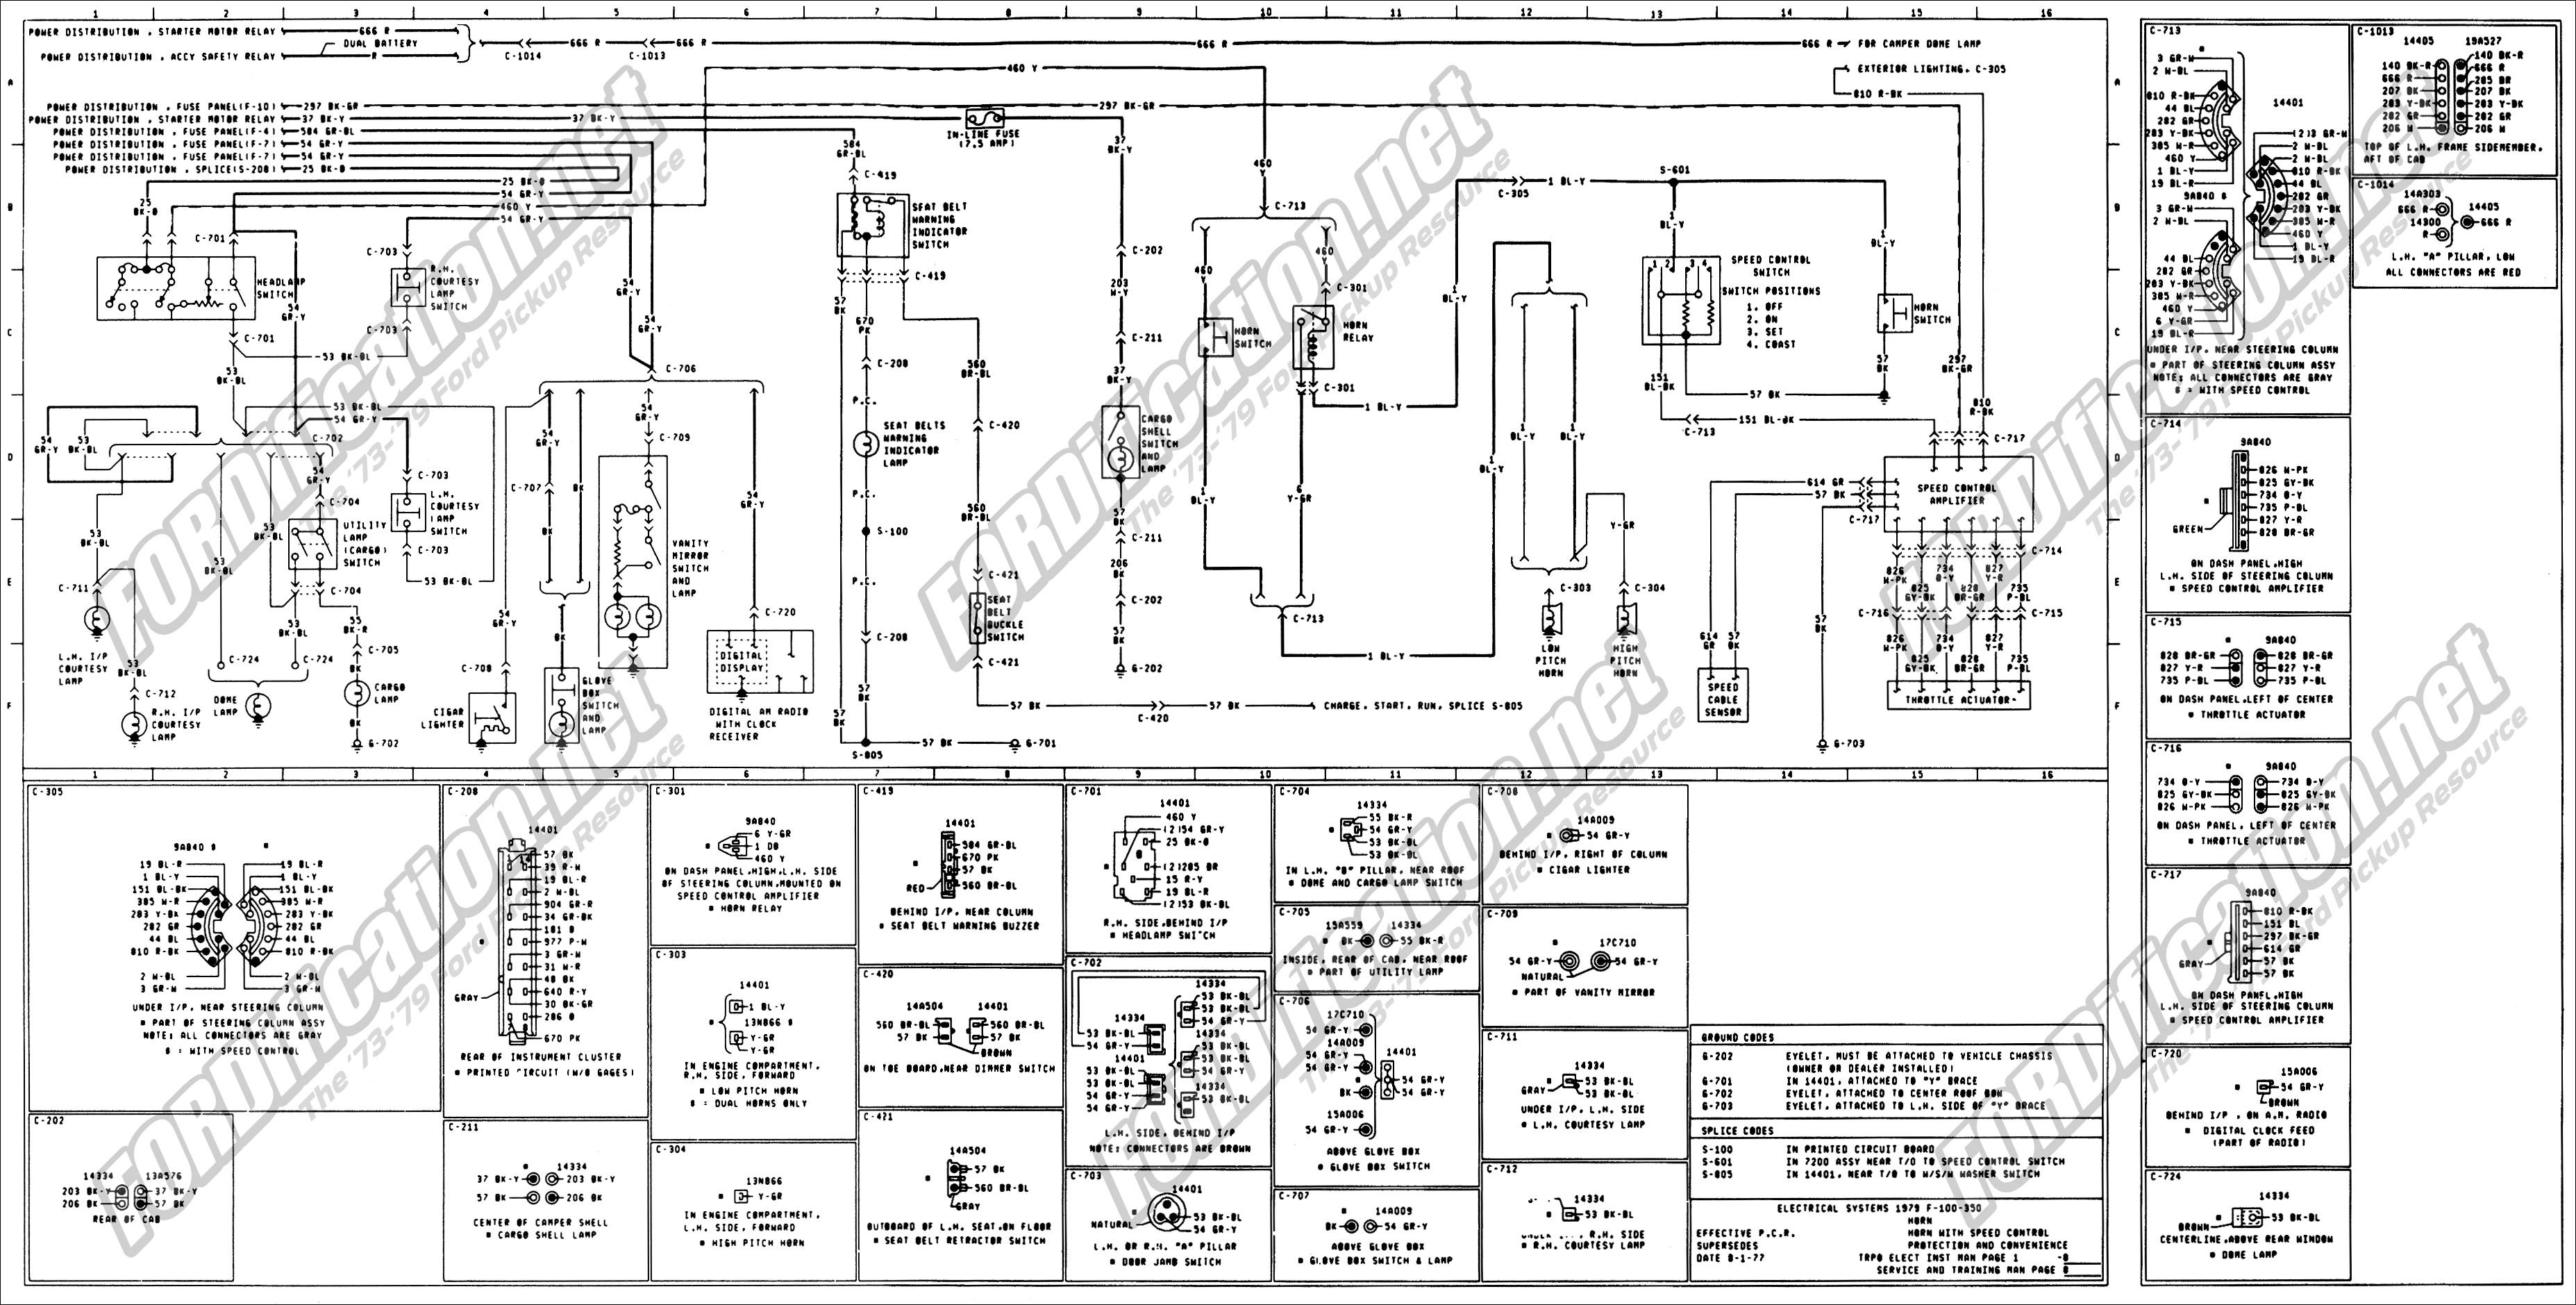 1991 ford f150 starter solenoid wiring diagram elegant wiring rh mainetreasurechest com ford f150 starter location ford f150 starter diagram